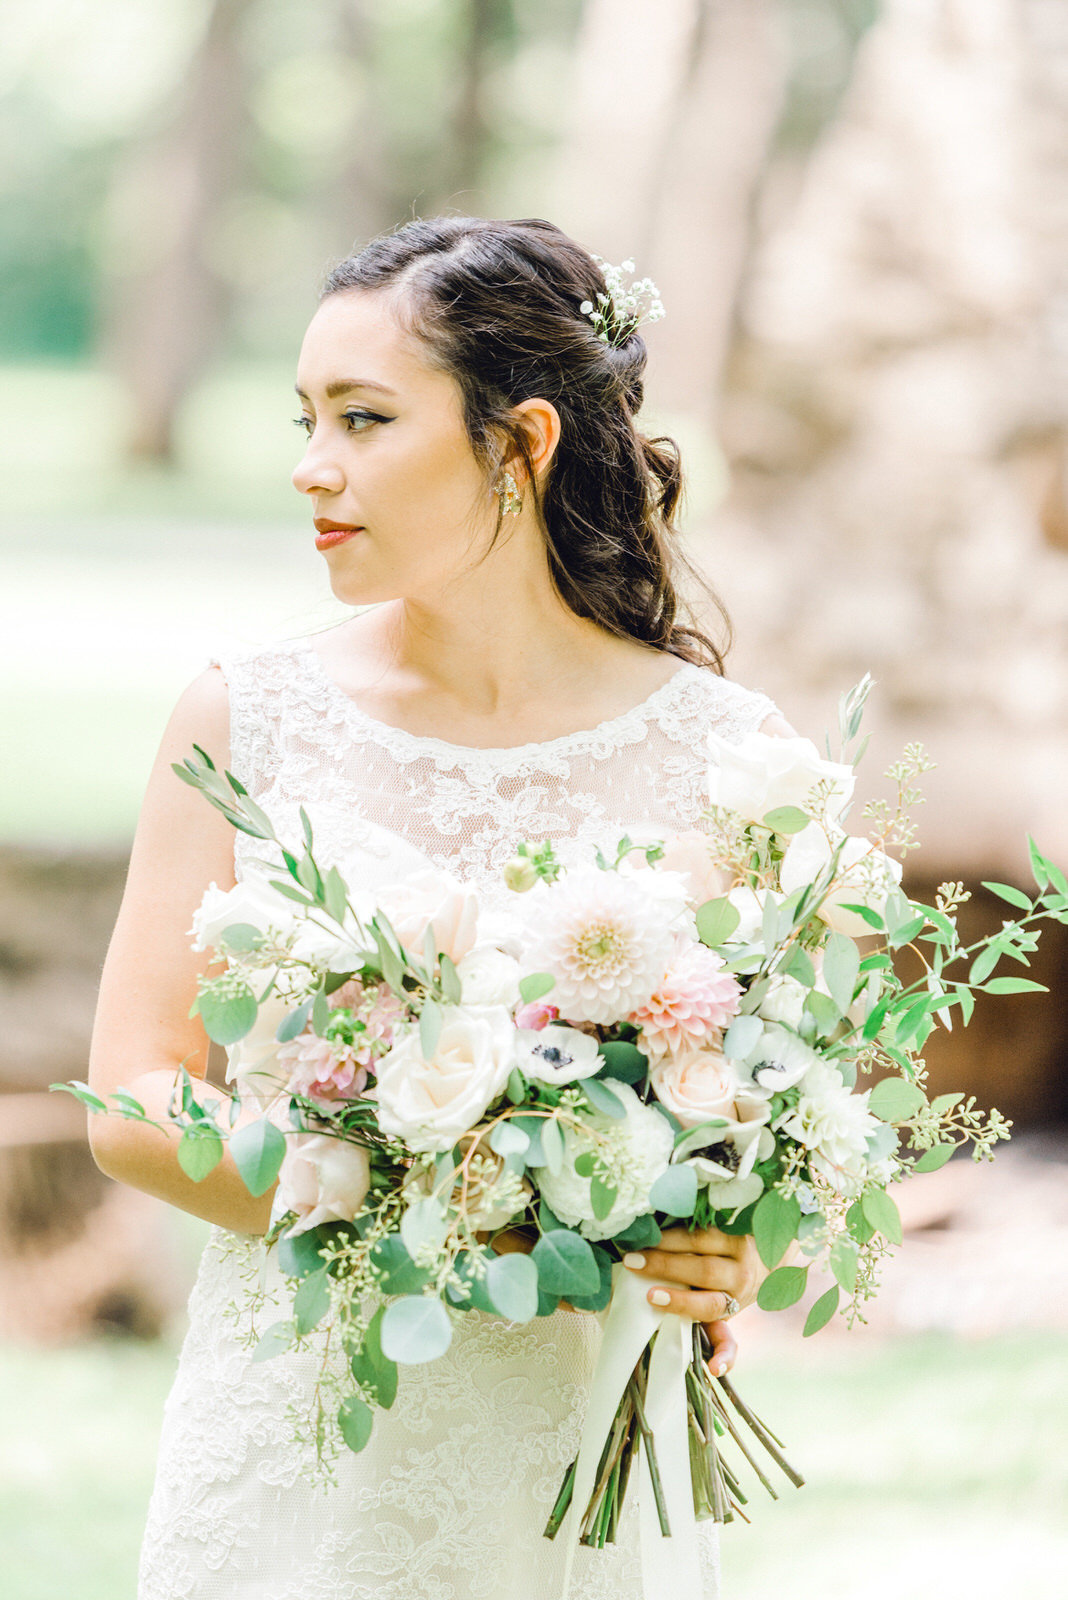 stunning bride with gorgeous wedding florals